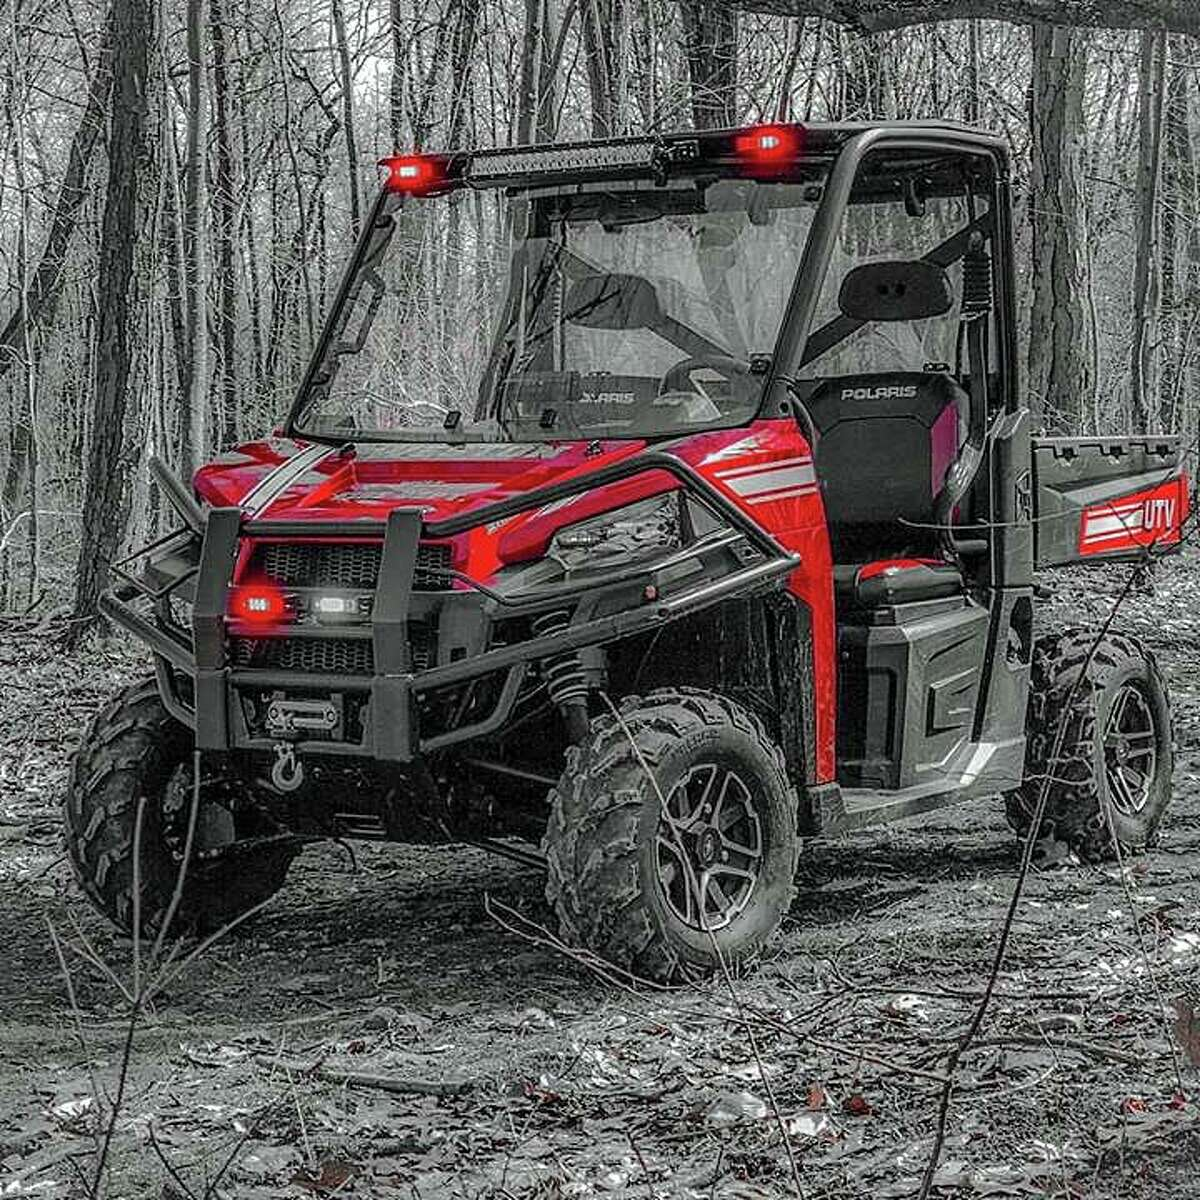 The searchers used a UTV rescue vehicle to locat two people who became lost in the Devil's Den Preserve on Sunday, Jan. 12, 2020.